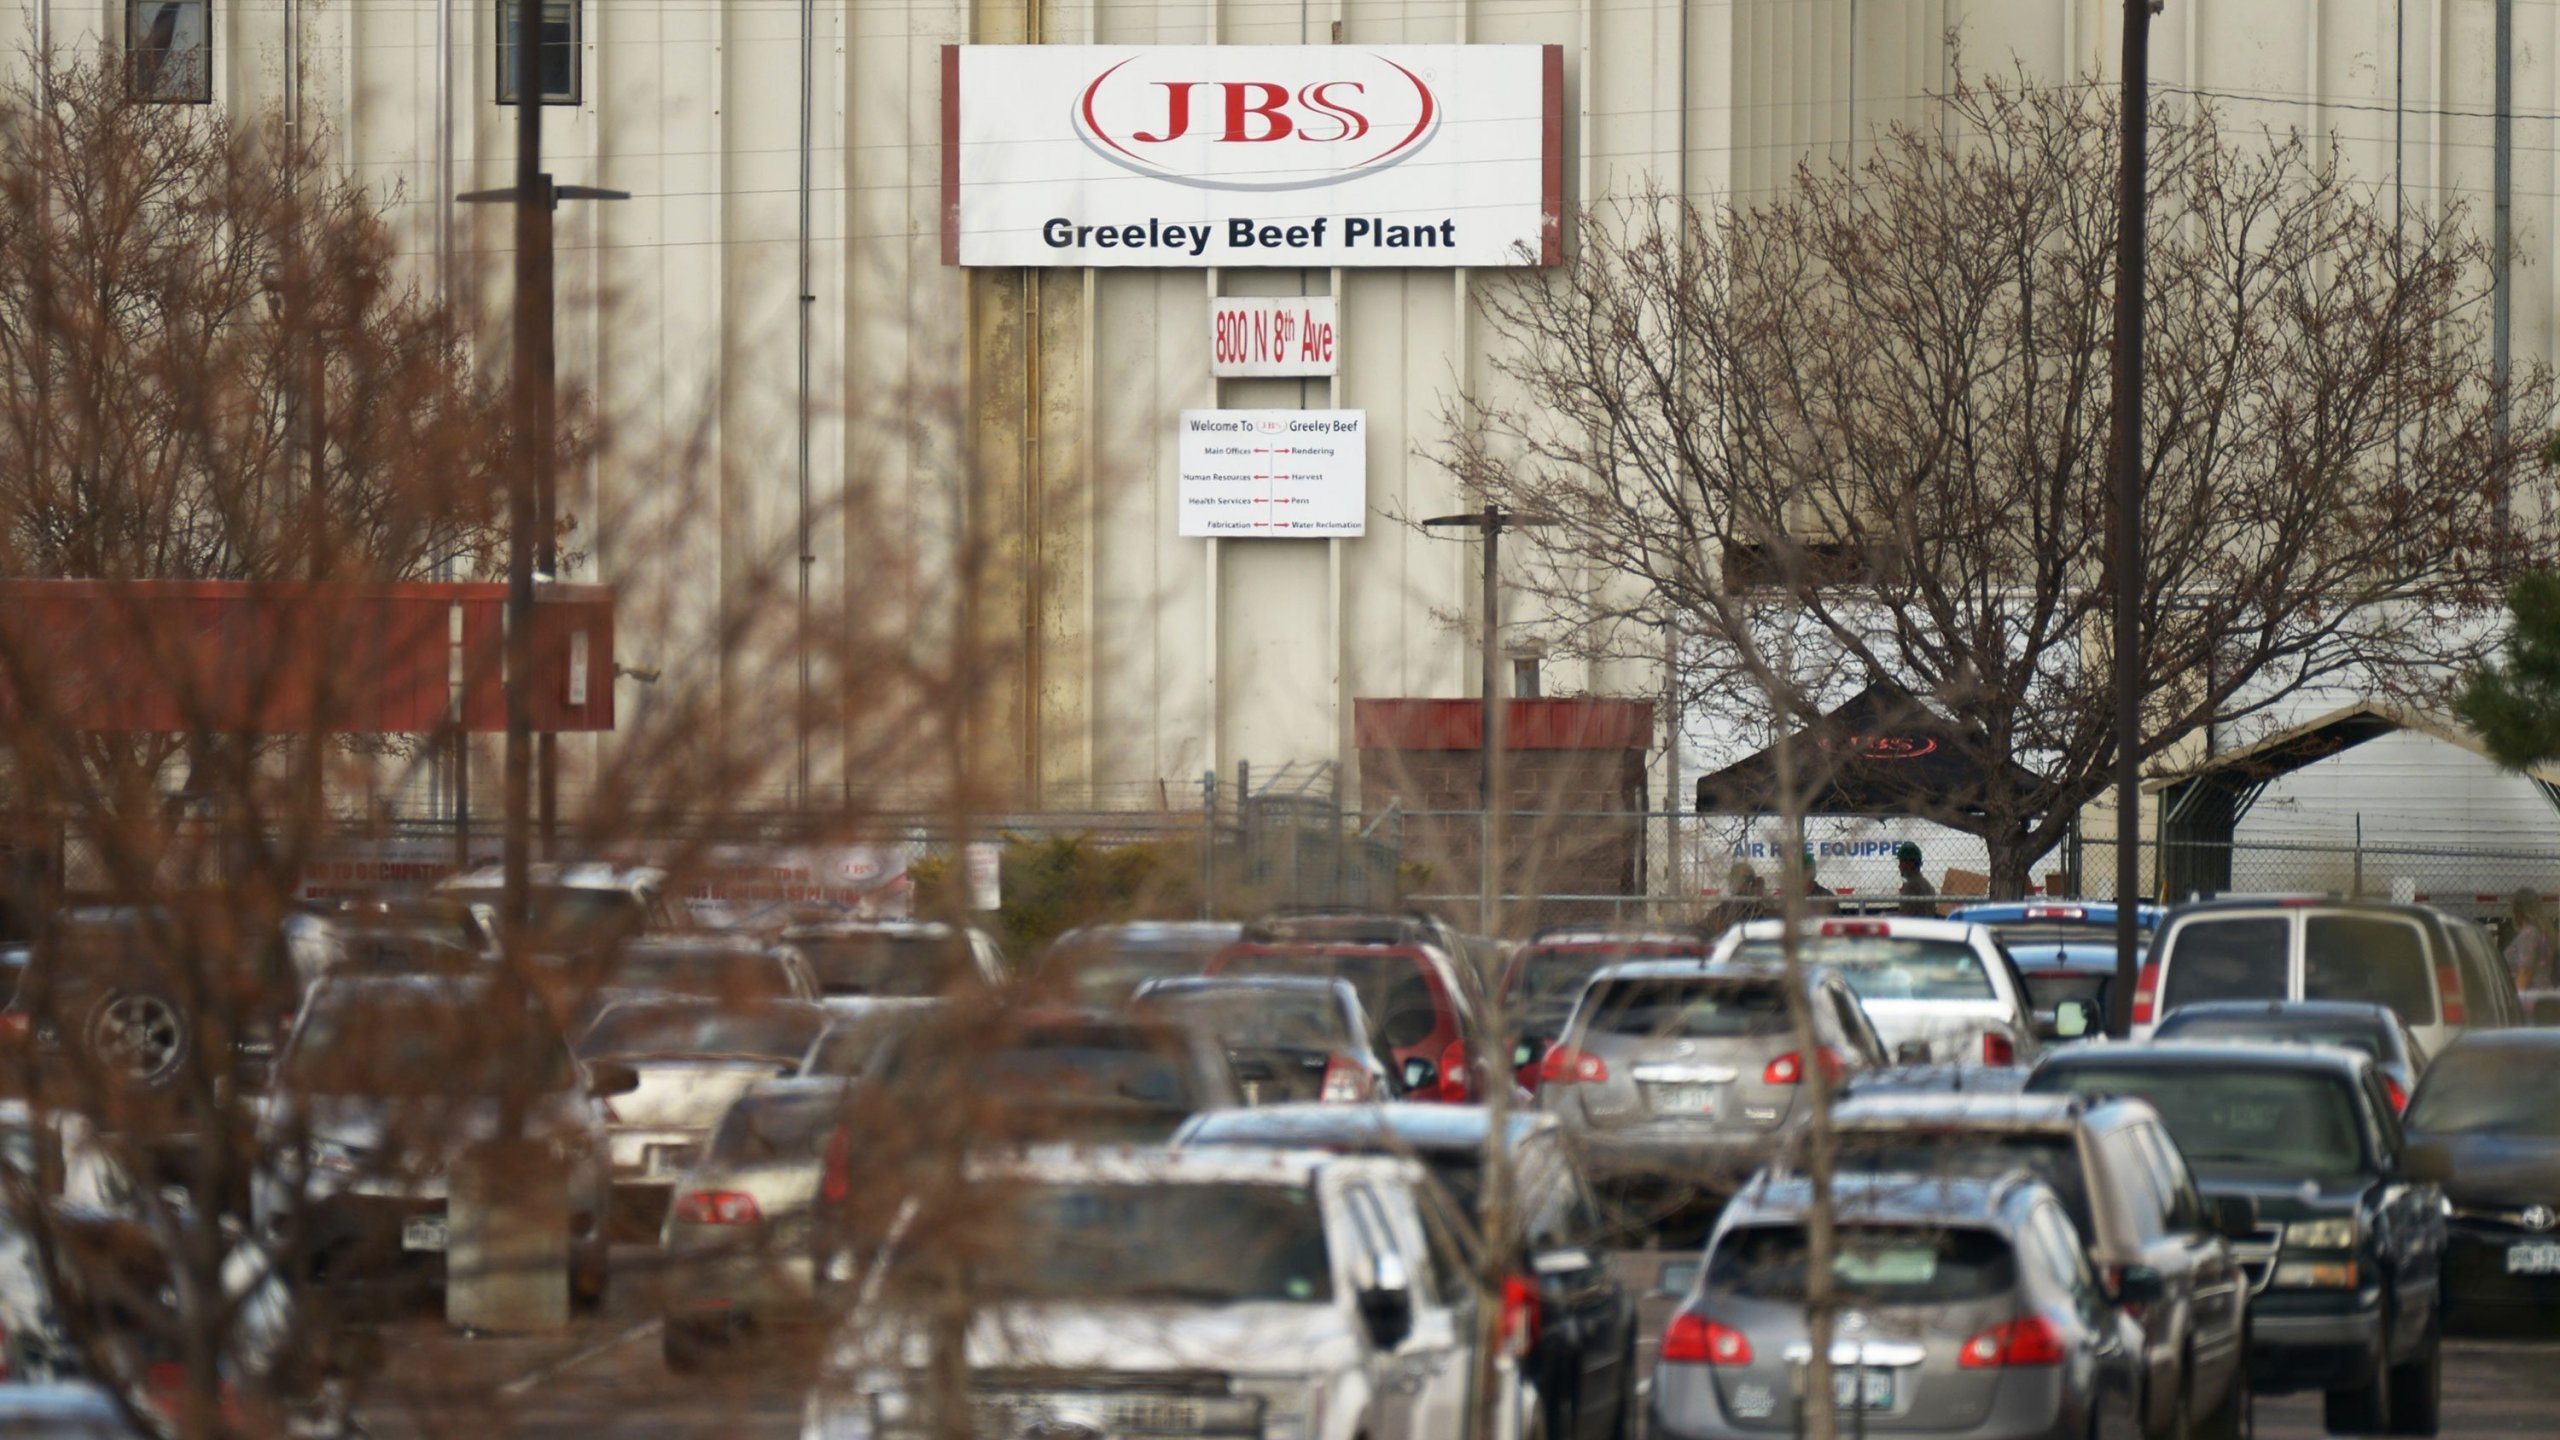 The JBS meatpacking plant in Greeley, Colorado is seen in this undated photo. (Hyoung Chang/MediaNews Group for Denver Post via Getty Images via CNN)